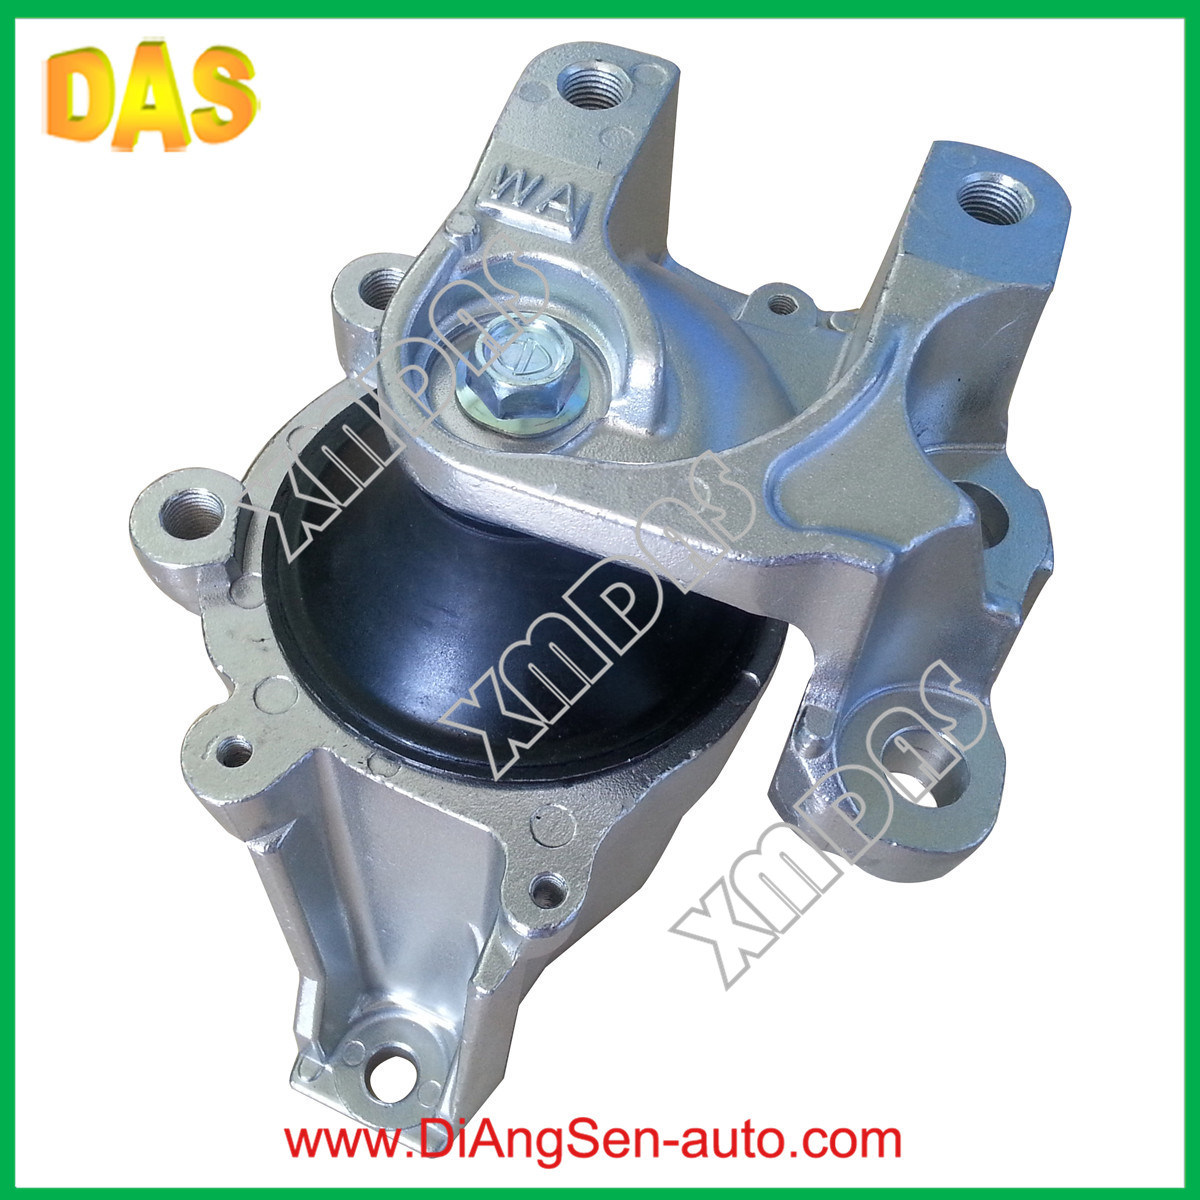 Auto Spare Parts Engine Mounting For Honda Crv 50820 Swg T01 2009 Ridgeline Suspension Control Arm Front Right Lower W0133 Factory